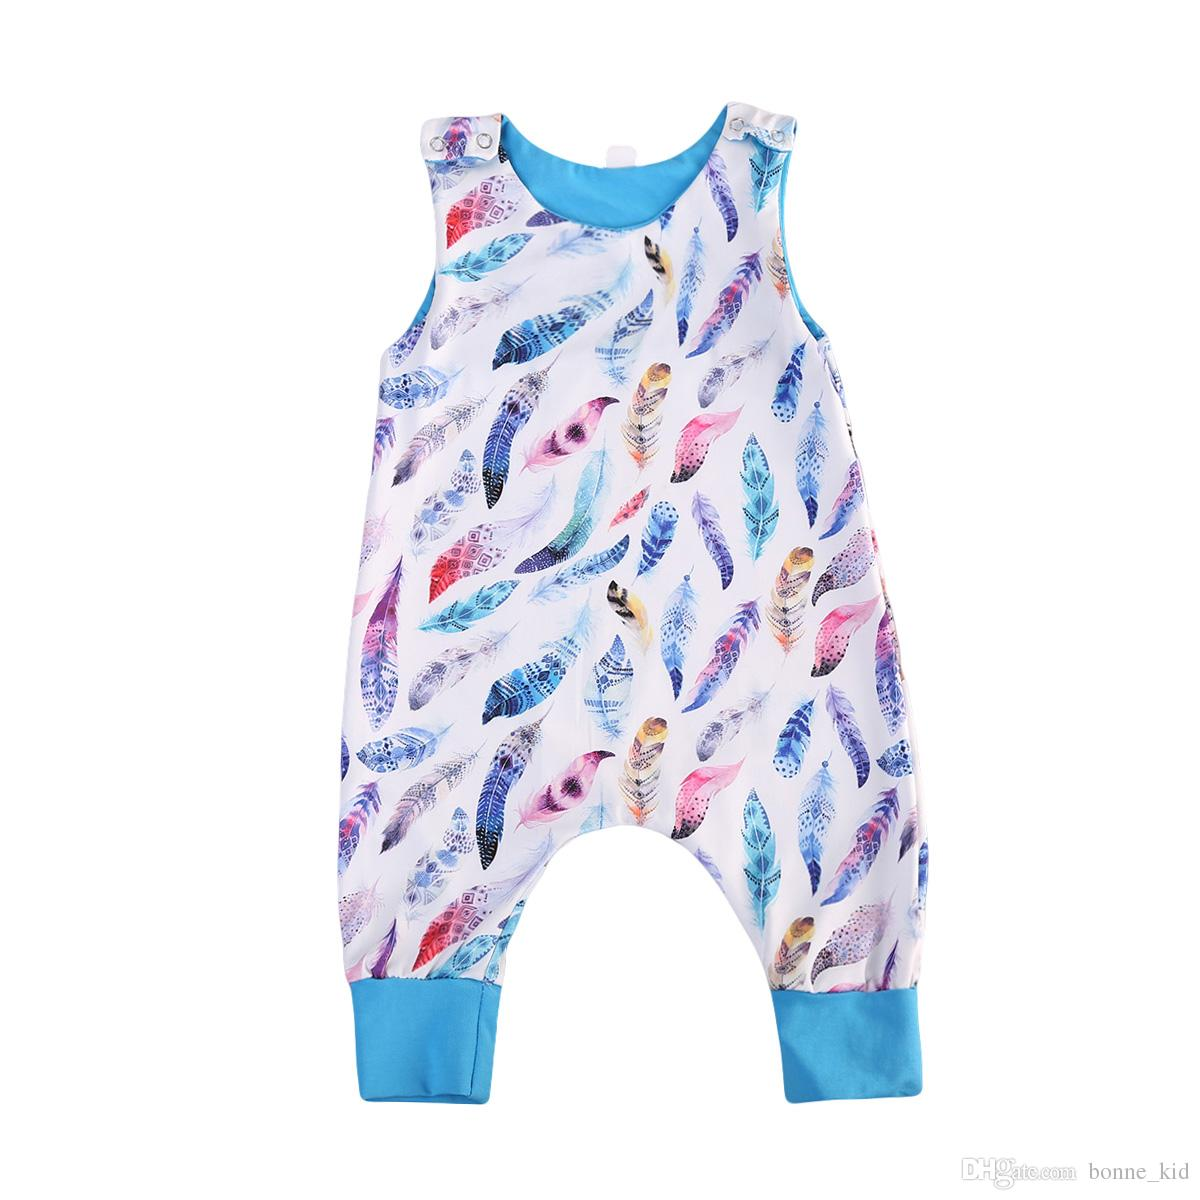 2019 Summer Baby Boy Feather Jumpsuit Onesies Blue Romper Toddler  Sleeveless Pajamas Baby Outfit Bodysuit Sunsuit Kid Clothing Set From  Bonne kid eb572cdd2b1